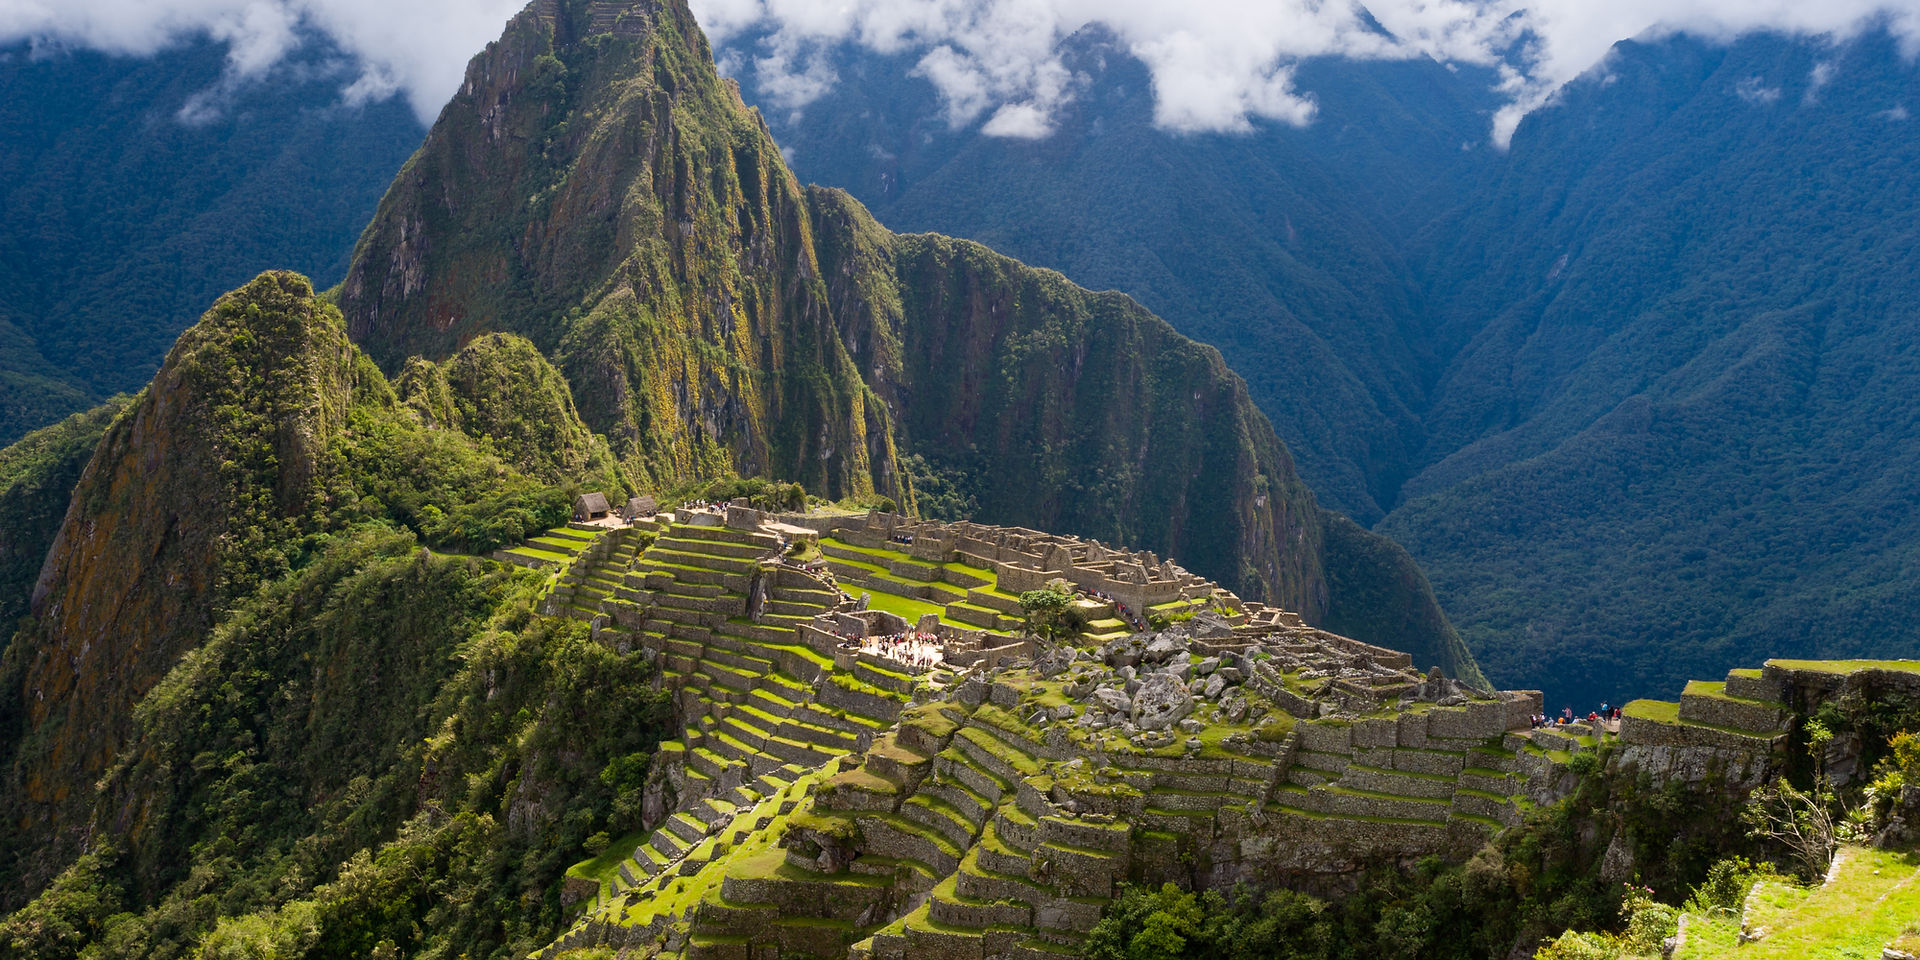 This image shows the Manchu Picchu compl